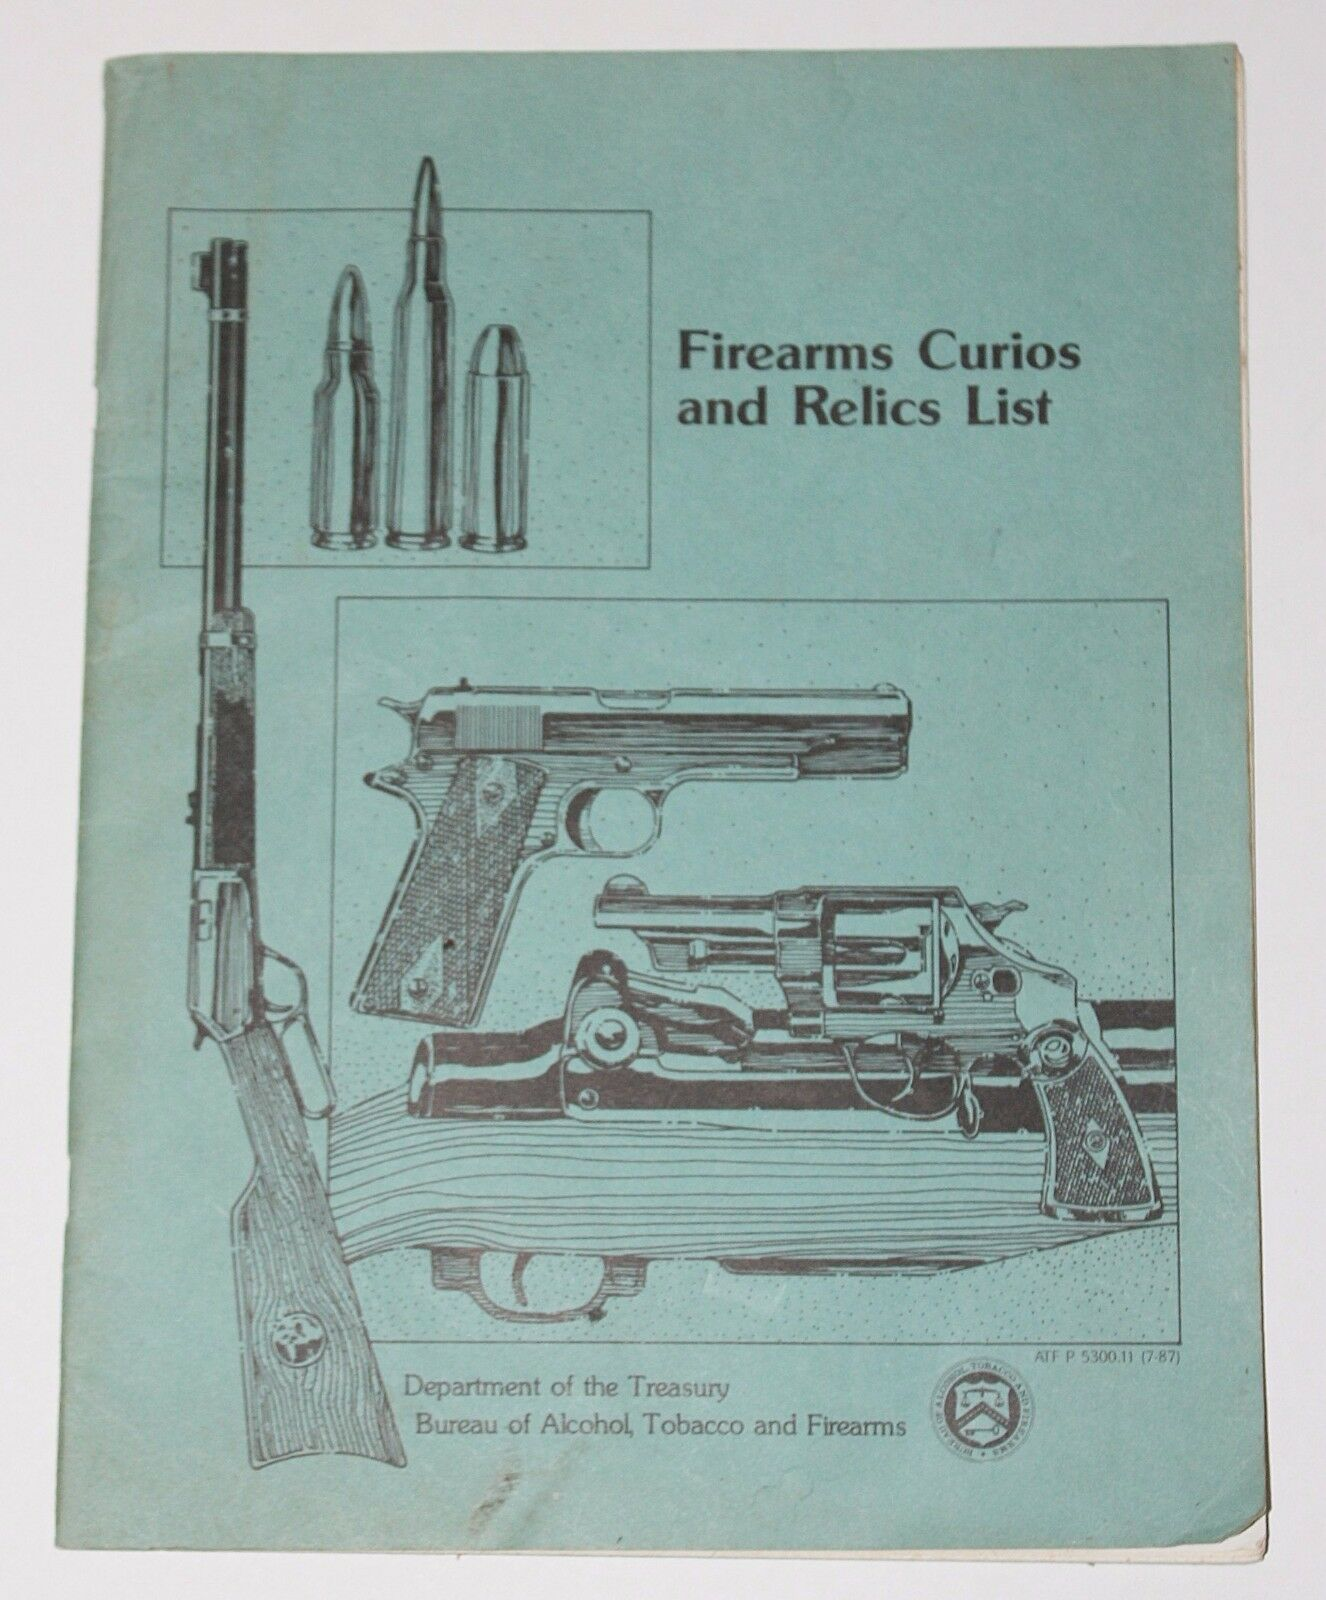 atf firearms curios or relics list